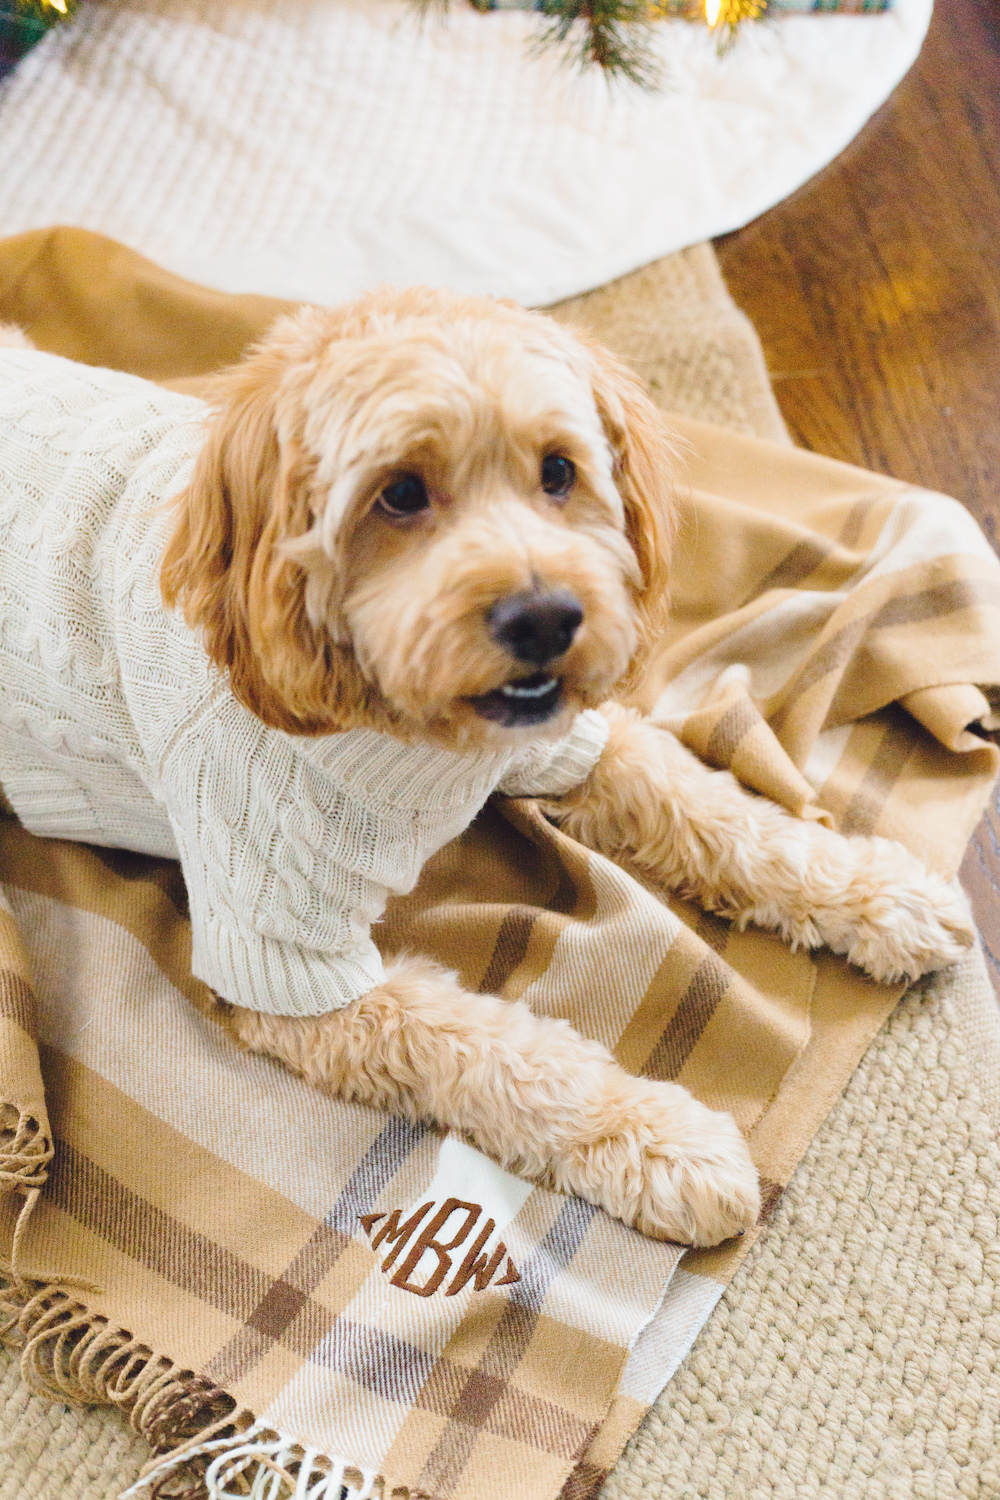 Mark Amp Graham Cable Knit Dog Sweater And Border Plaid